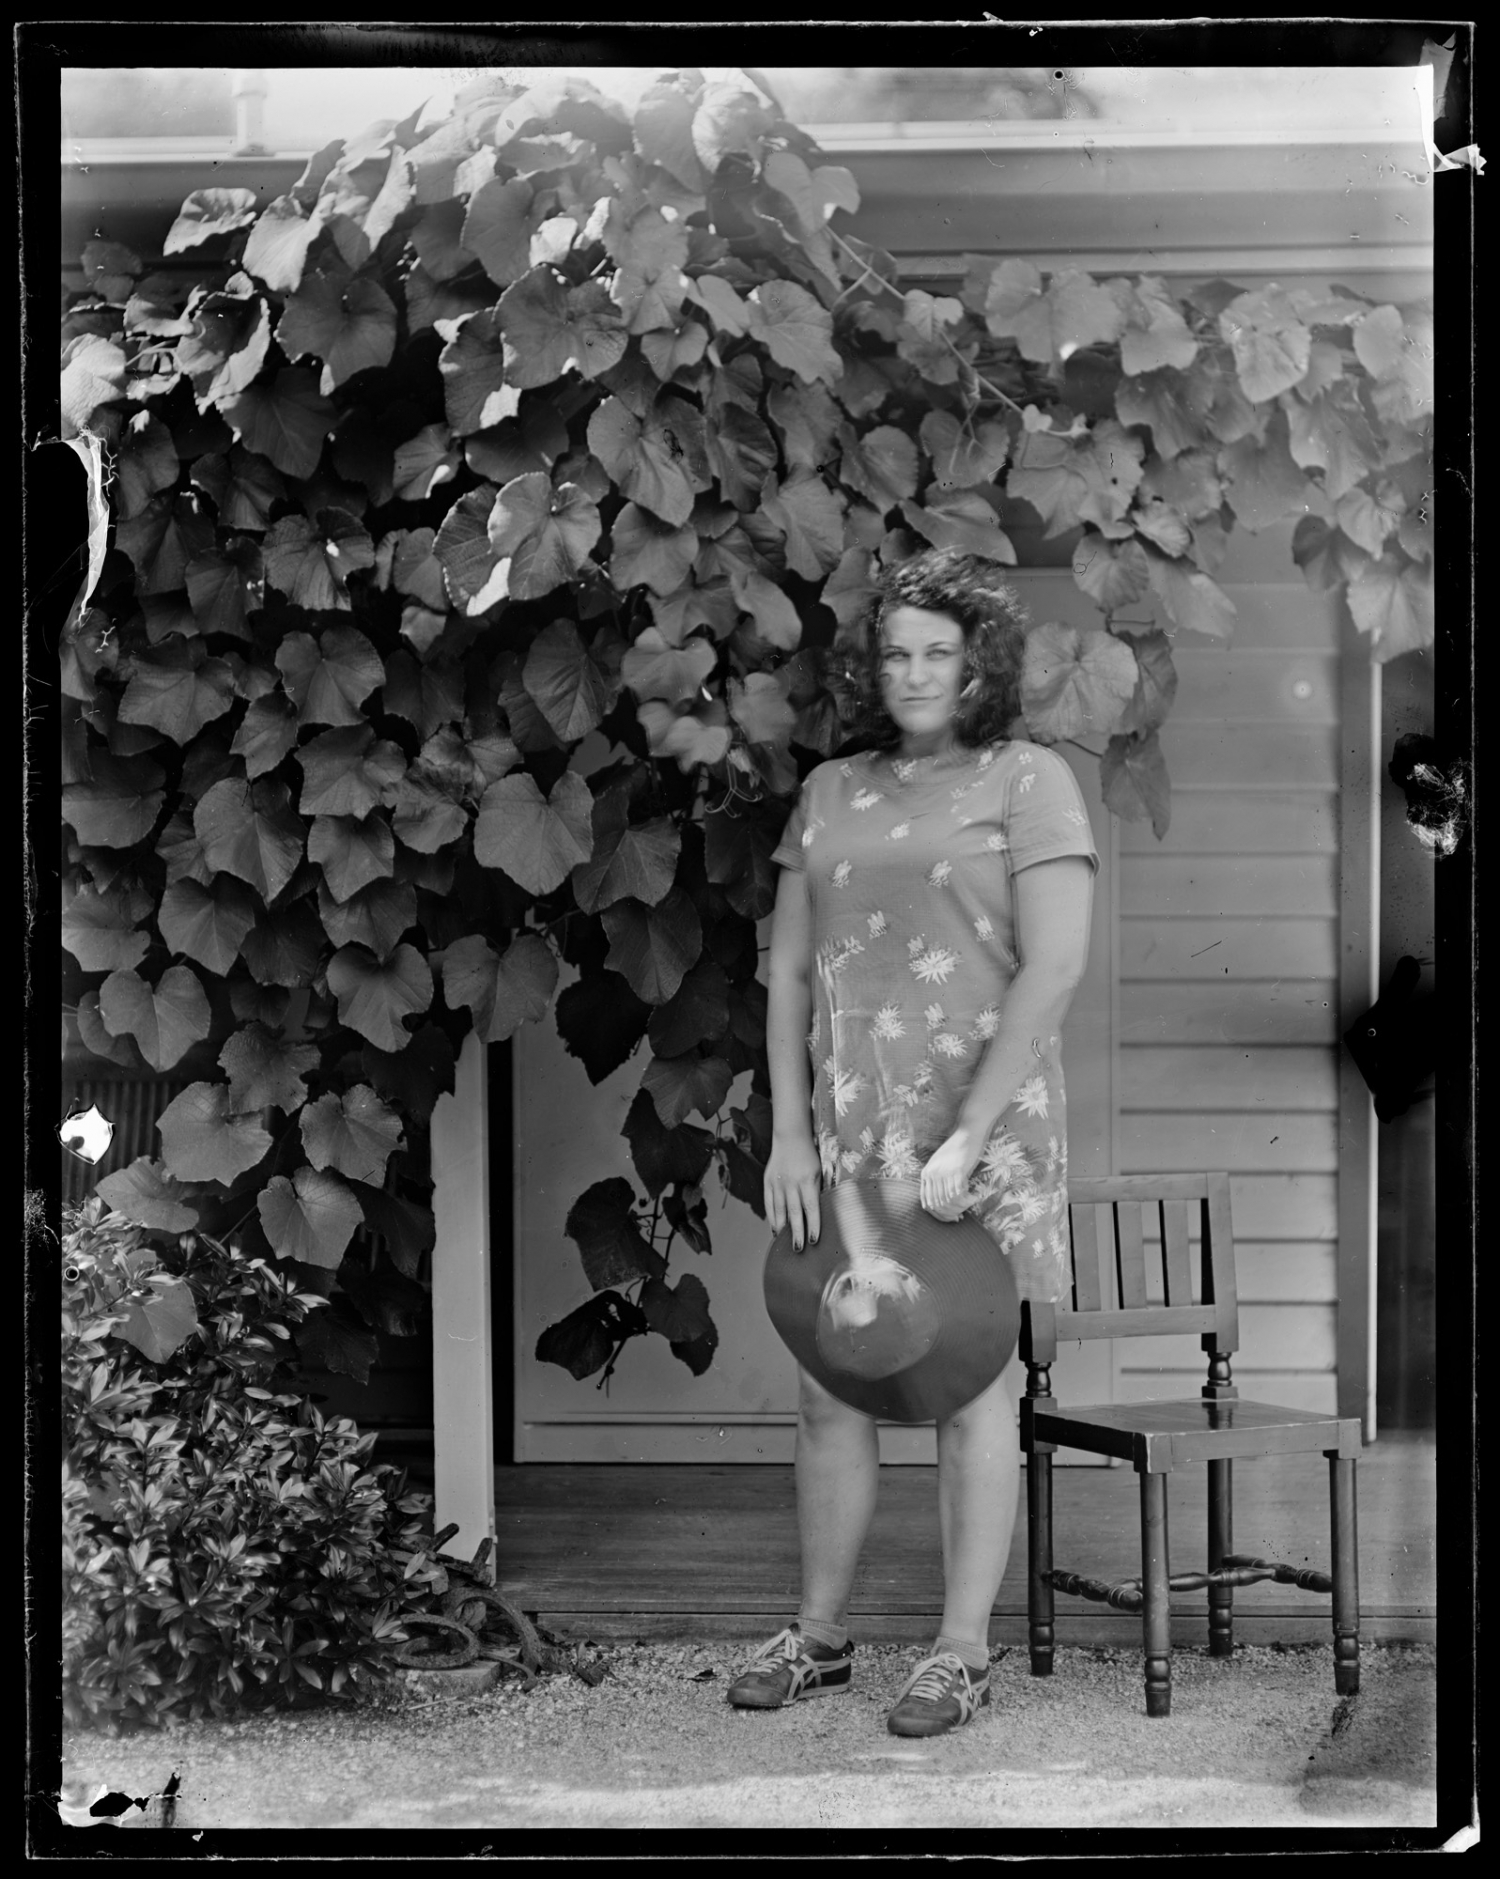 Black and white photo of woman in garden.